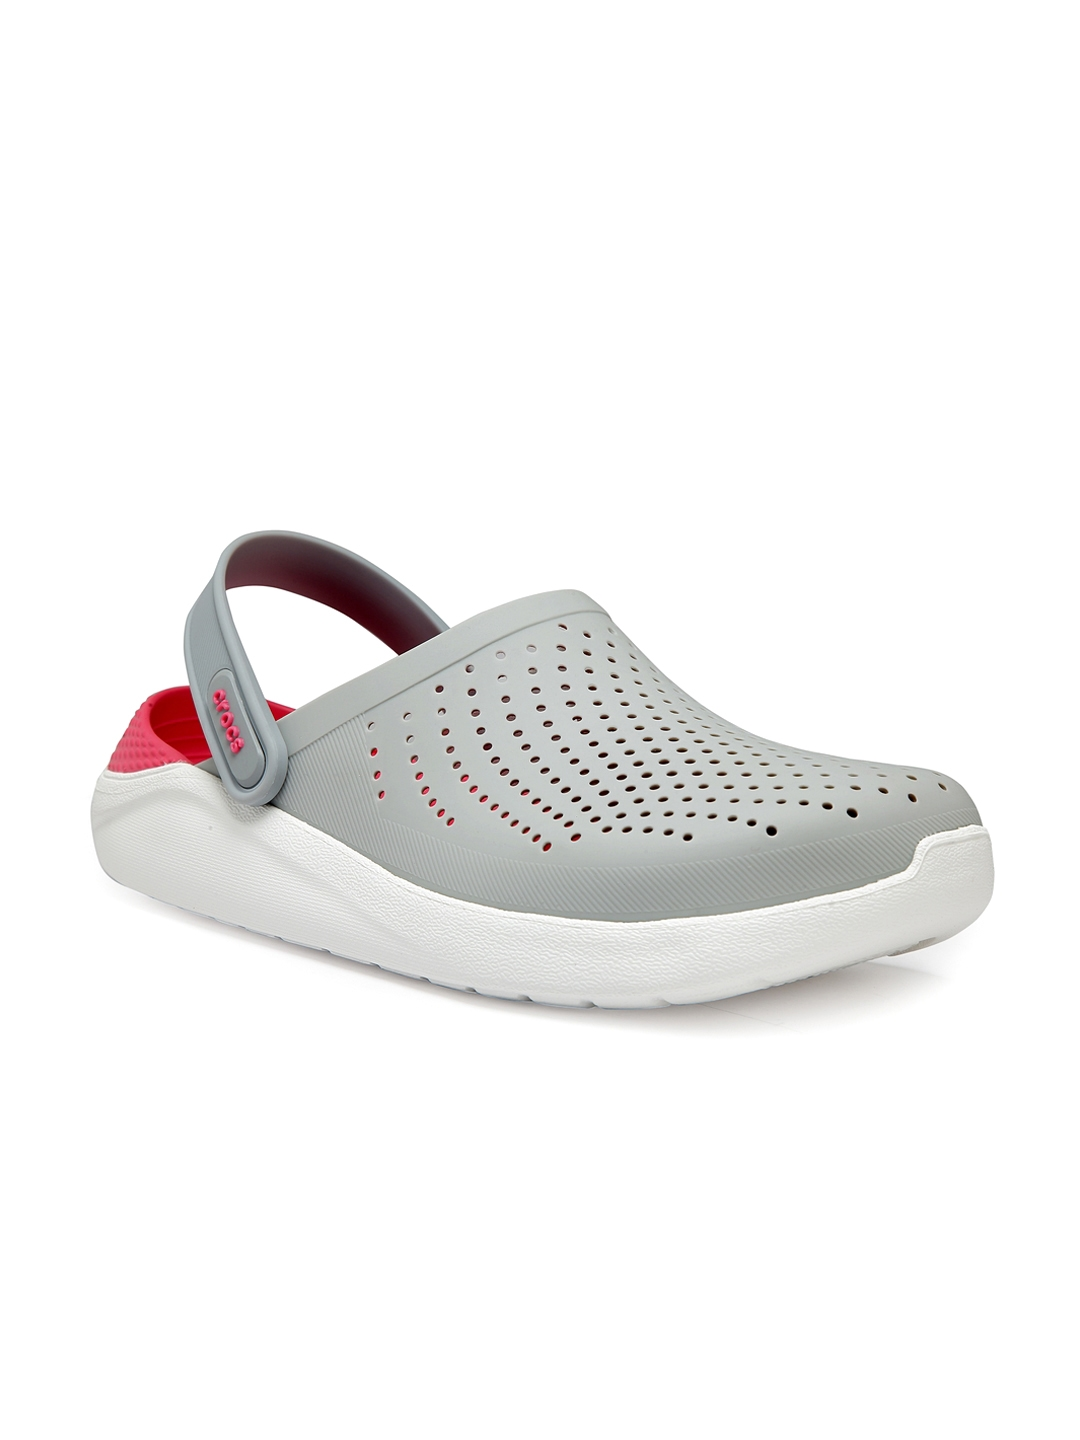 7e0f5864 Crocs Men Grey & White Clogs. This product is already at its best price